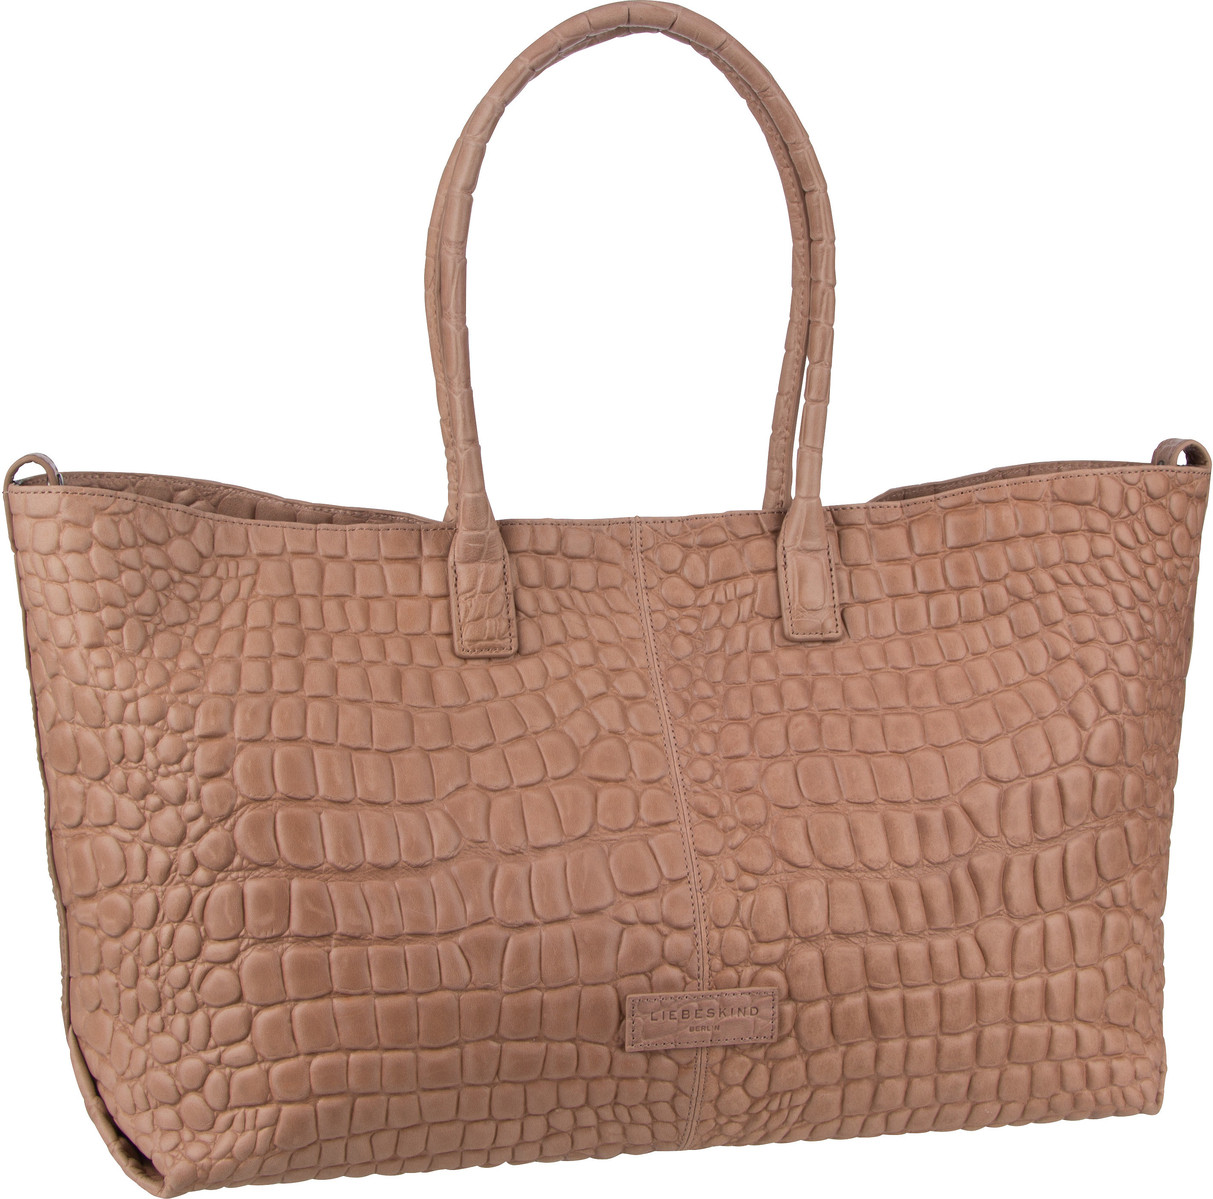 Berlin Handtasche Malibu Chelsea Shopper L Dusty Rose